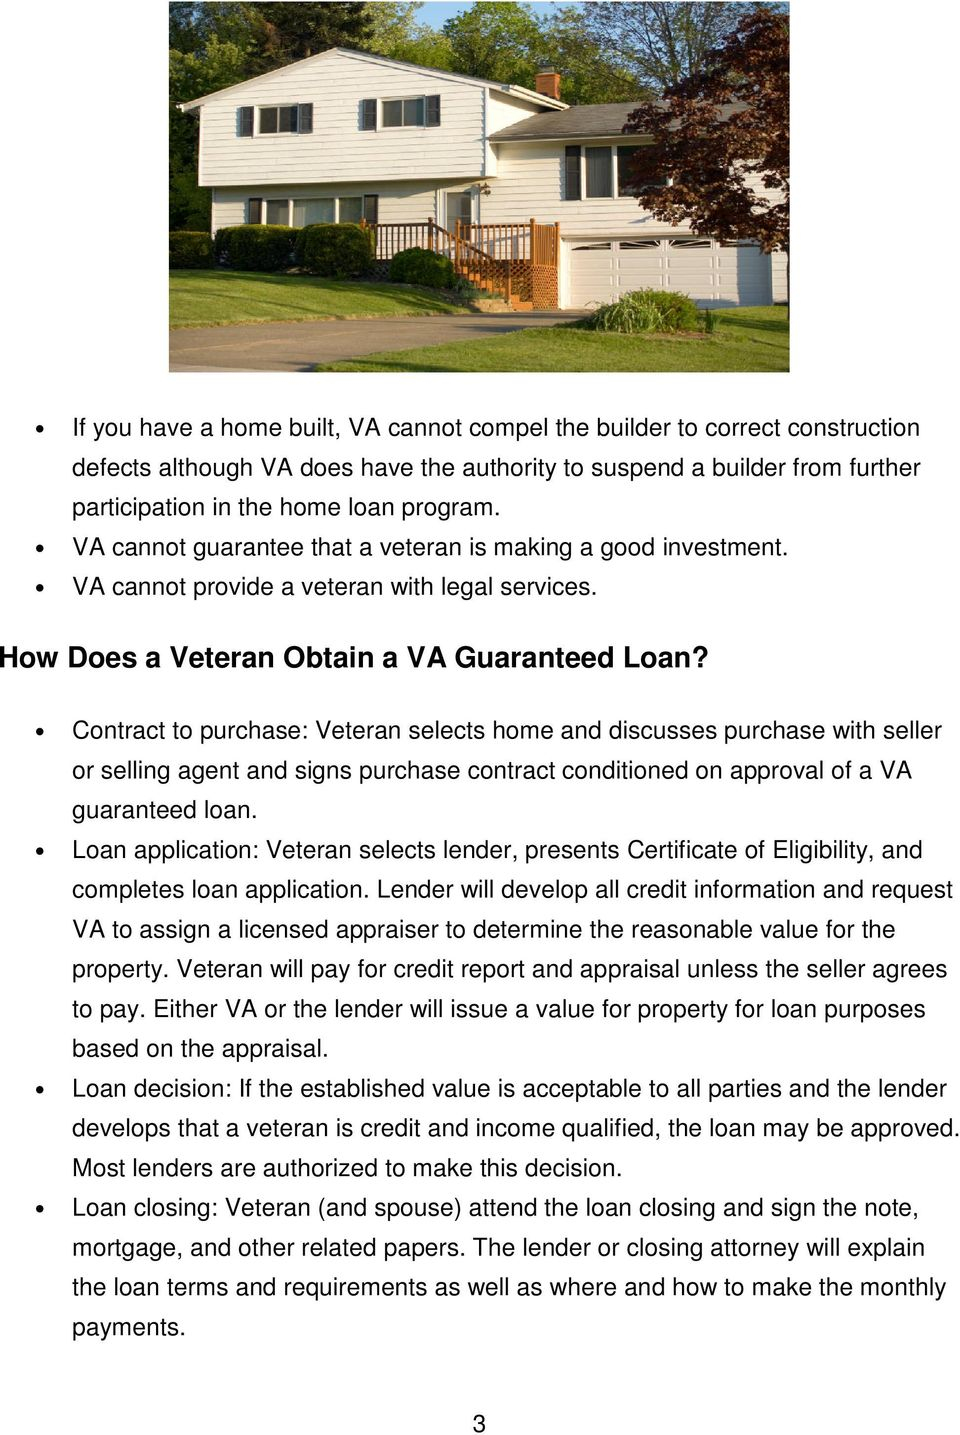 Contract to purchase: Veteran selects home and discusses purchase with seller or selling agent and signs purchase contract conditioned on approval of a VA guaranteed loan.